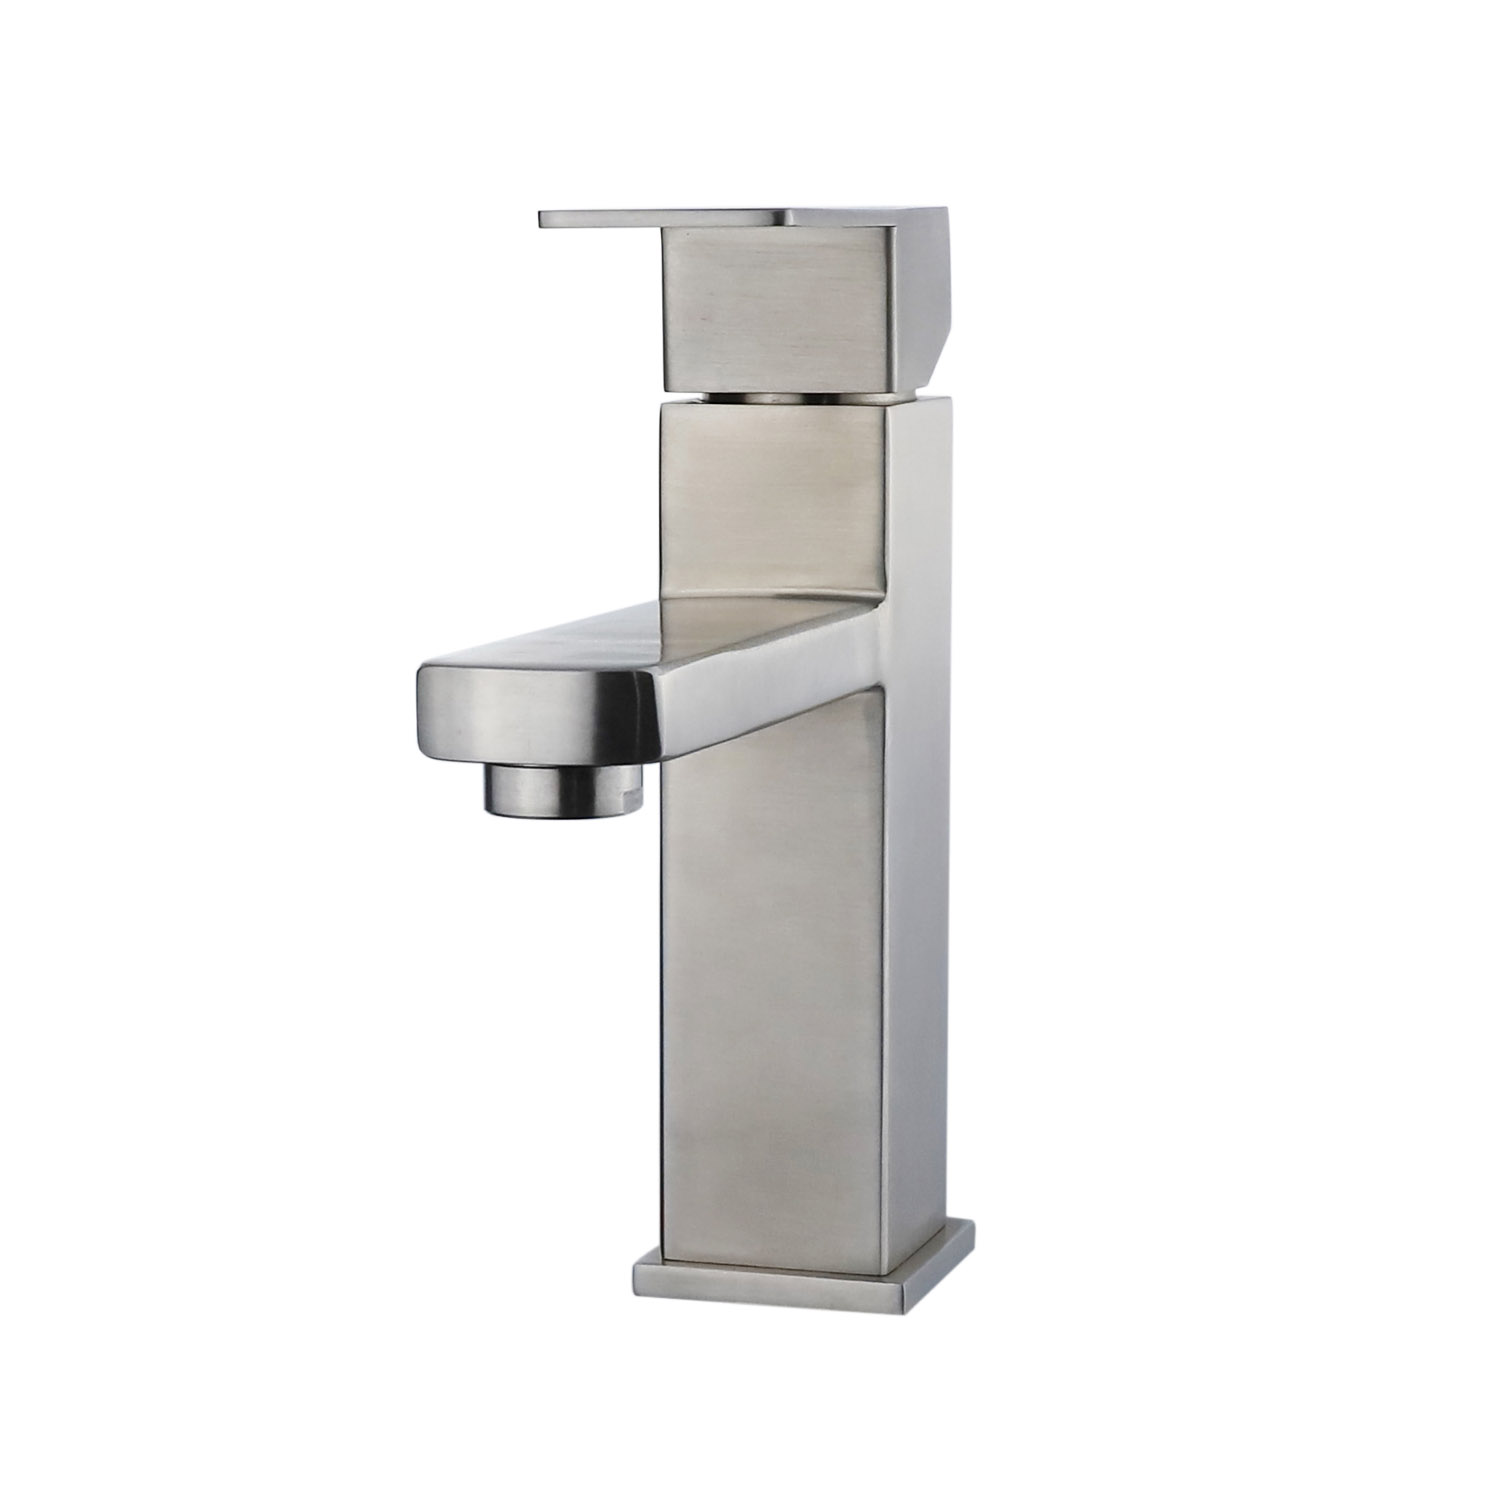 Single handle stainless steel basin faucet B206 01 16 2